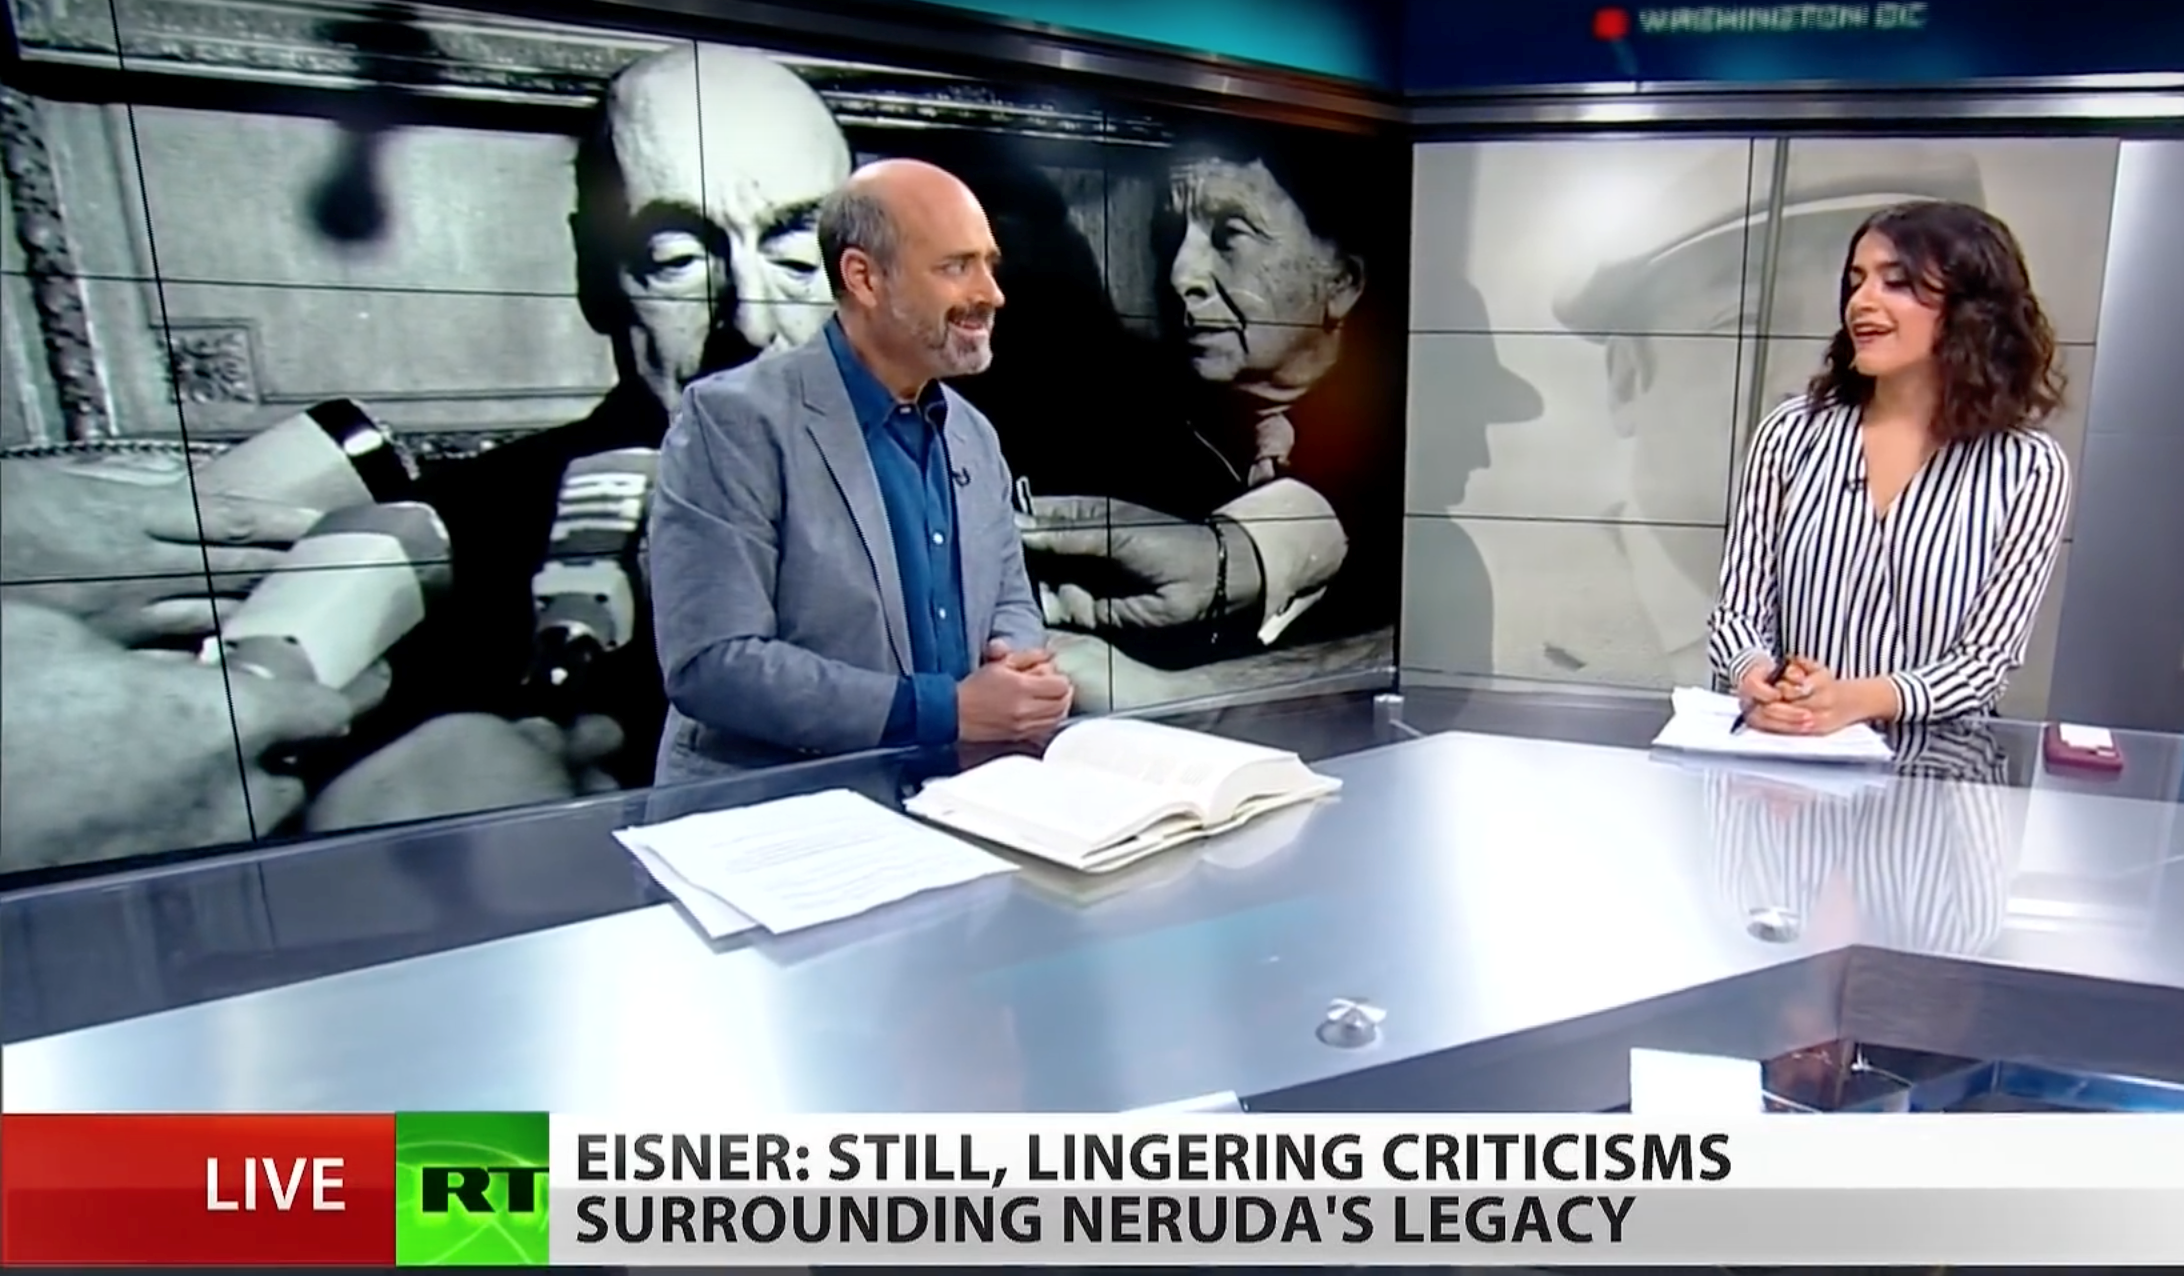 Mark Eisner on RT